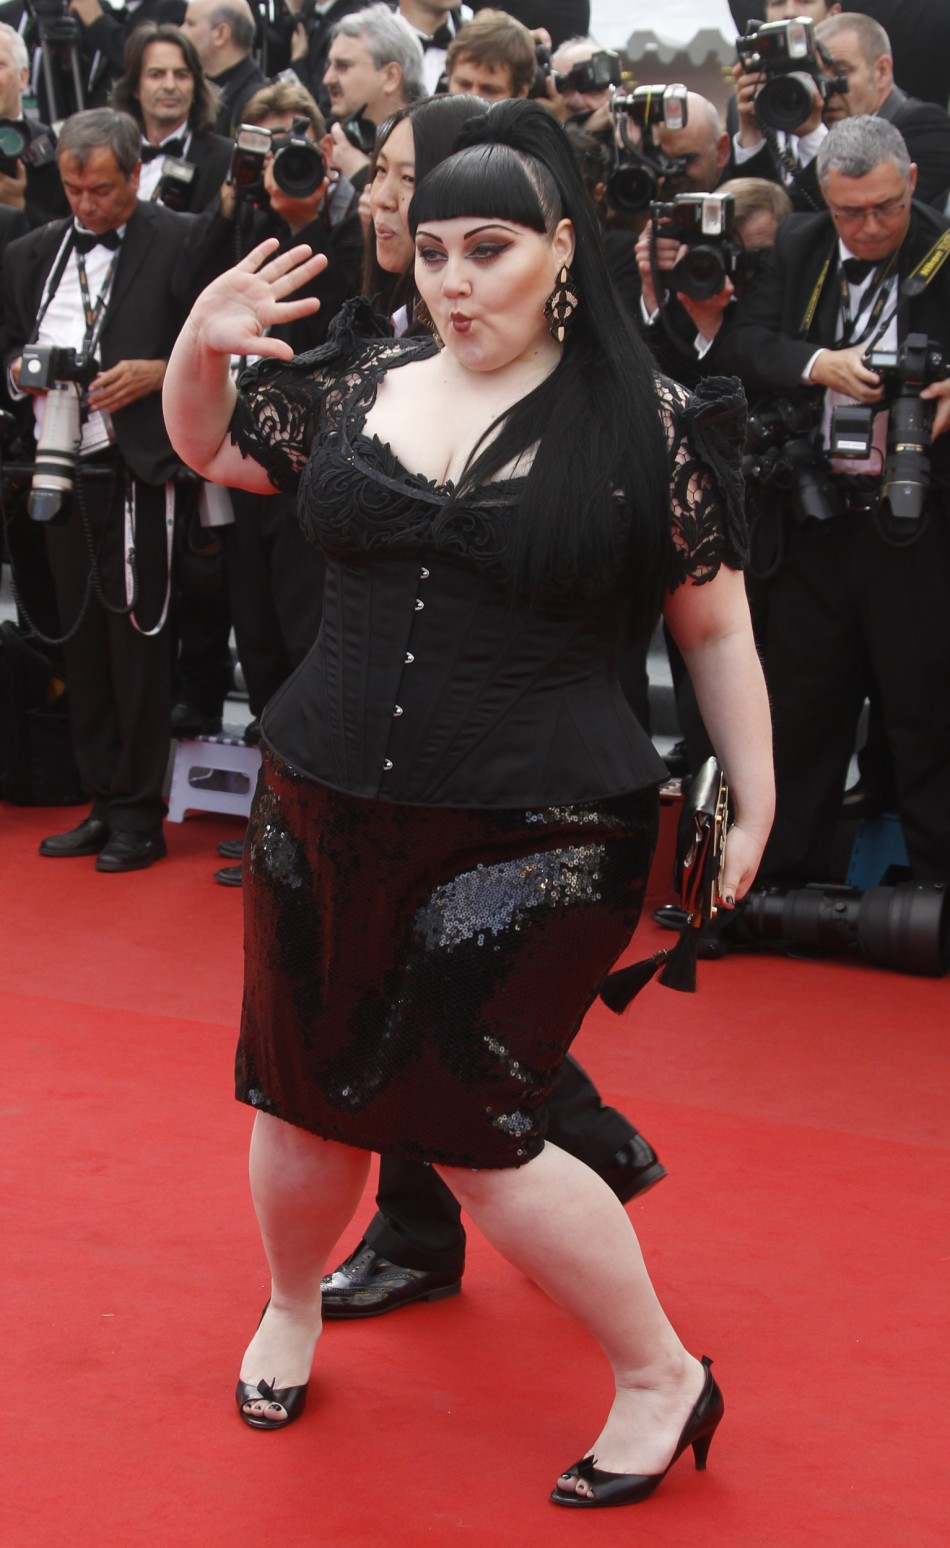 Singer Ditto arrives on the red carpet for the screening of the film De rouille et dos at the 65th Cannes Film Festival